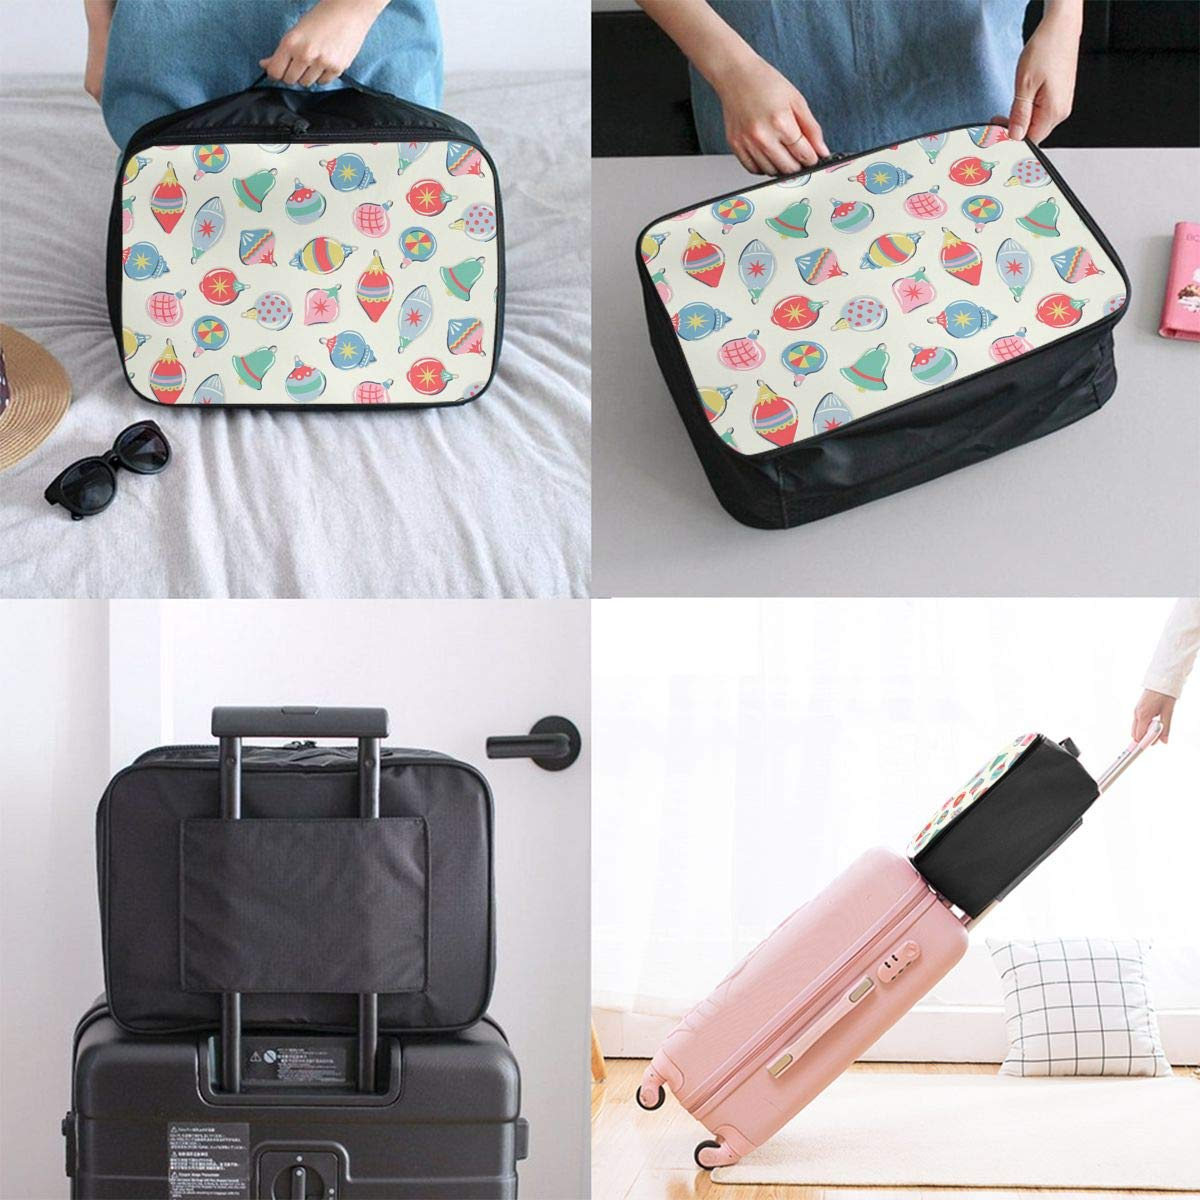 Travel Luggage Duffle Bag Lightweight Portable Handbag Baubles Pattern Large Capacity Waterproof Foldable Storage Tote